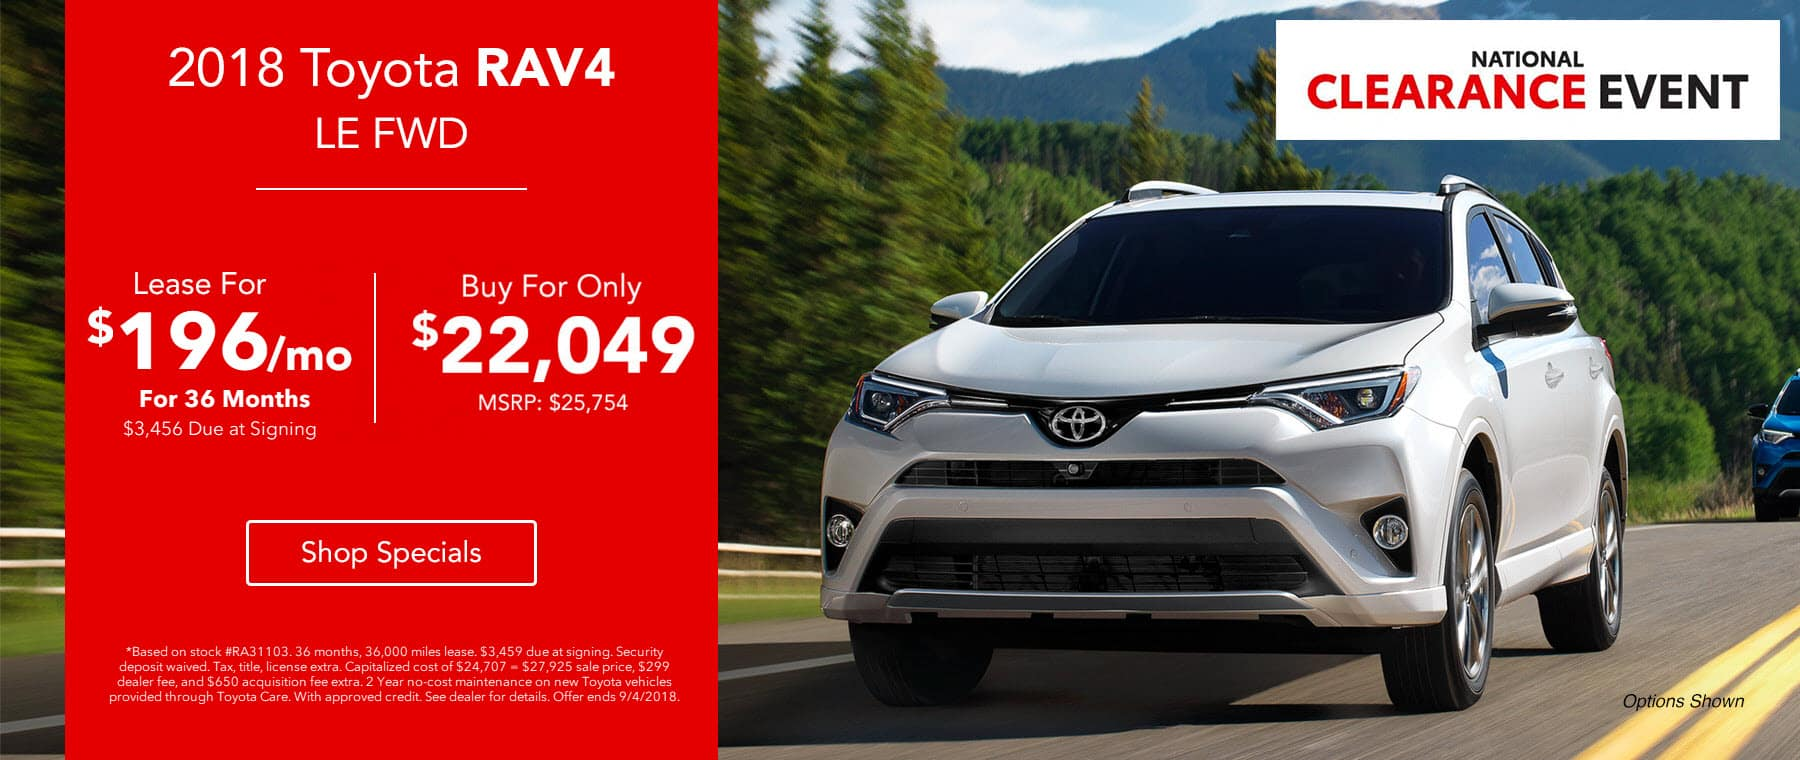 2018 Toyota RAV4 LE FWD - Lease for $196/mo